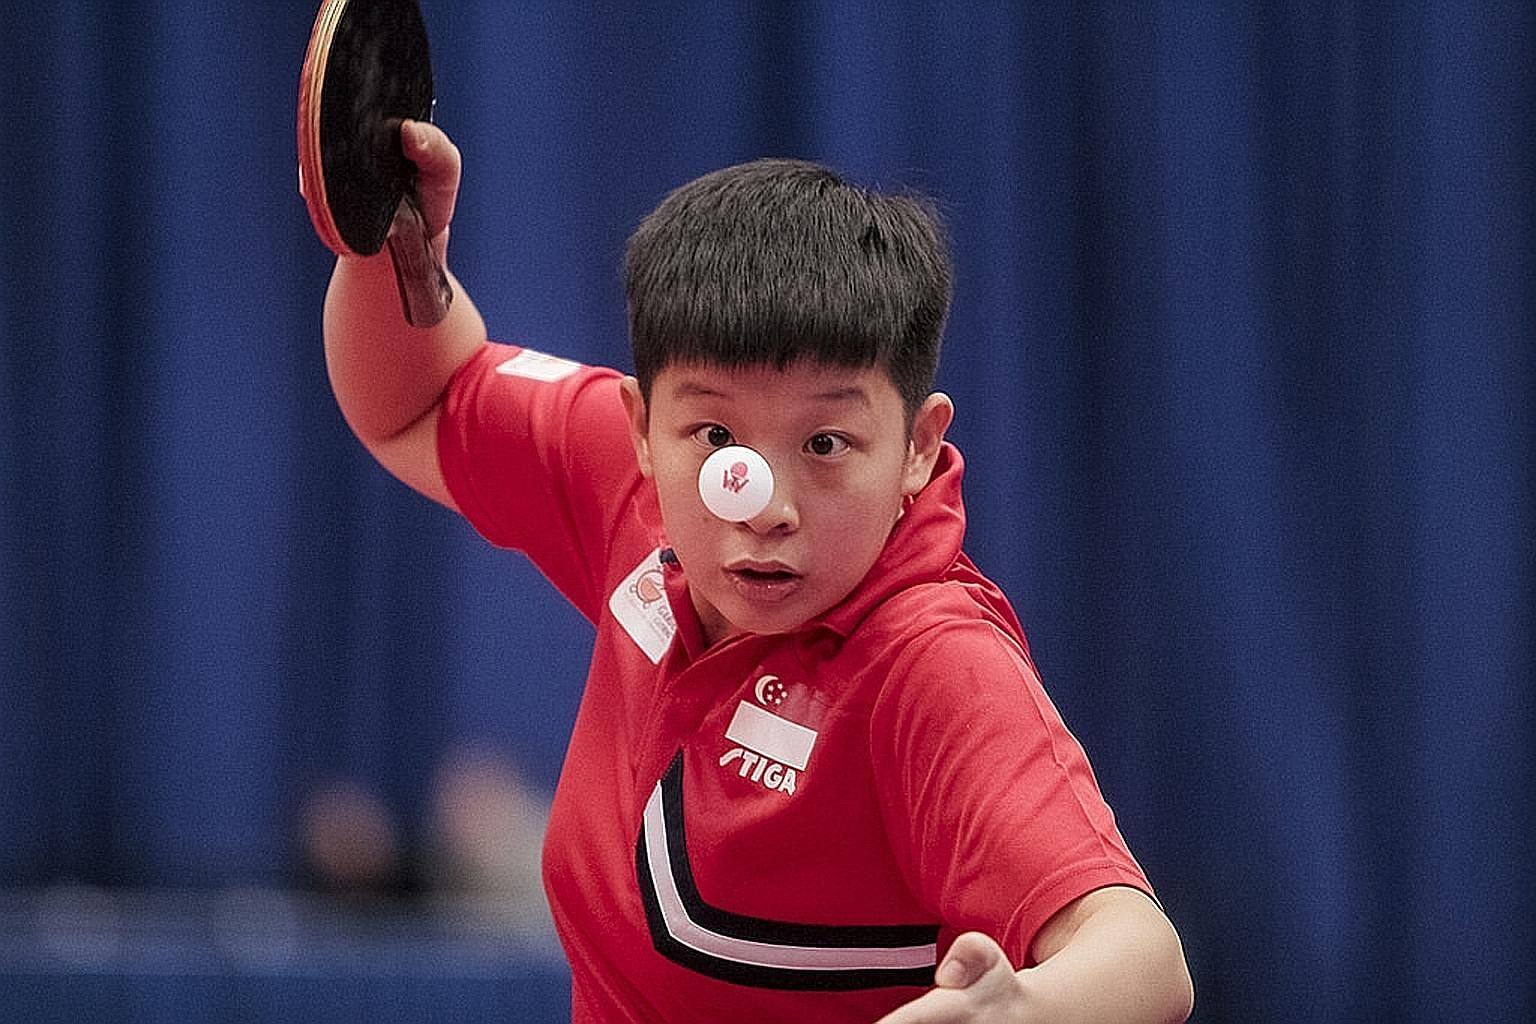 China-born Zeng Jian won three Under-21 titles last year and is currently 25th in the world rankings.